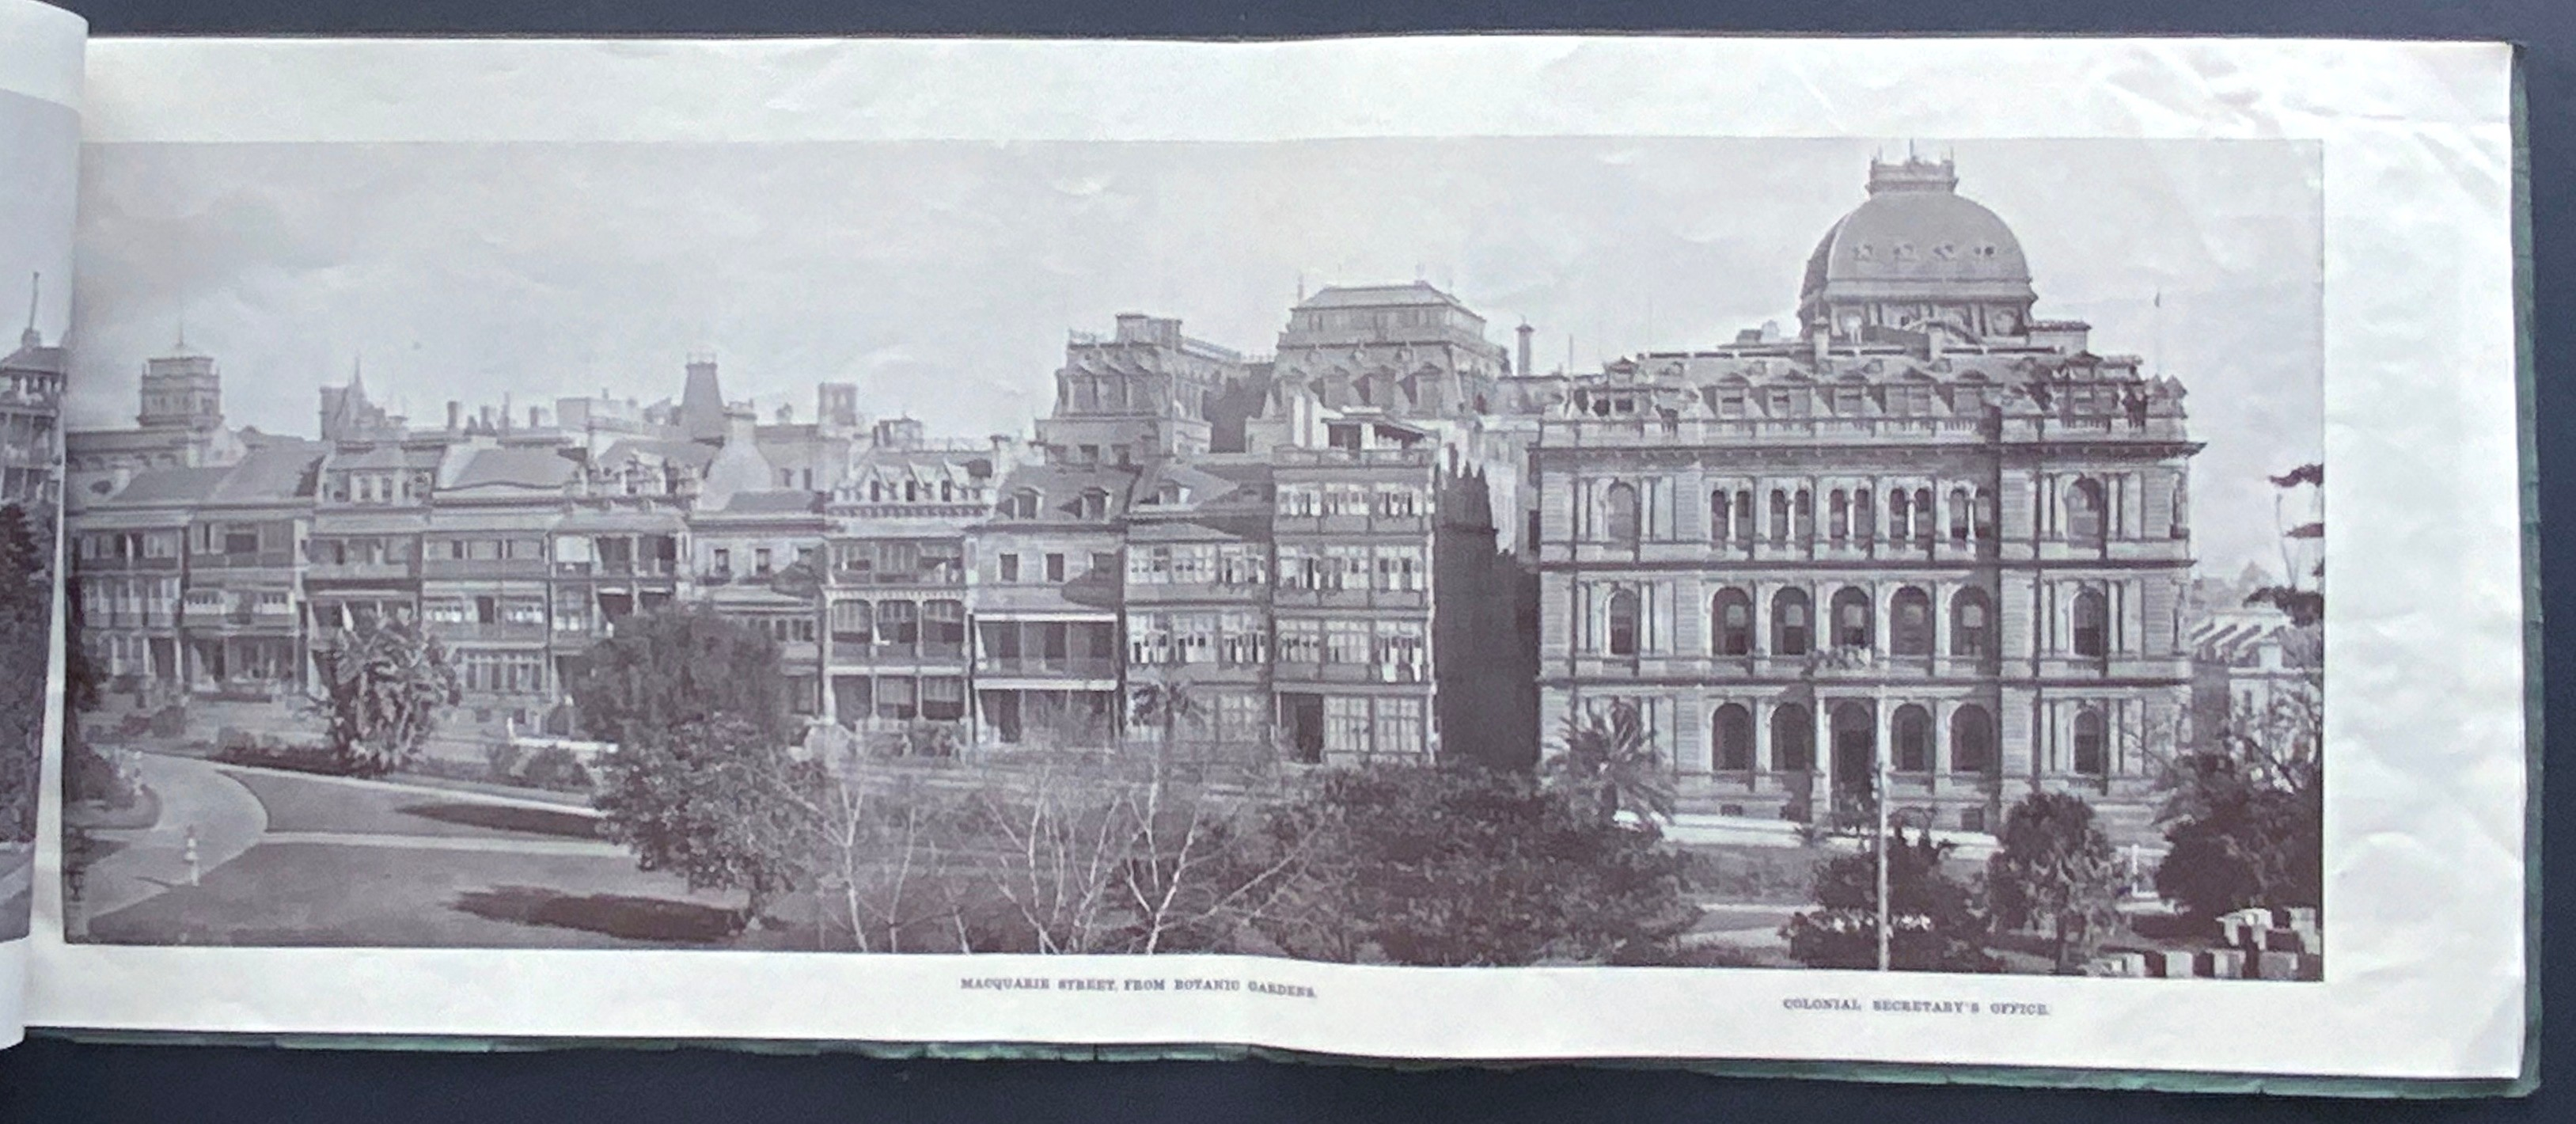 MOST UP-TO-DATE SYDNEY PANORAMIC VIEWS BY H. PHILLIPS c.1930 - Image 3 of 3